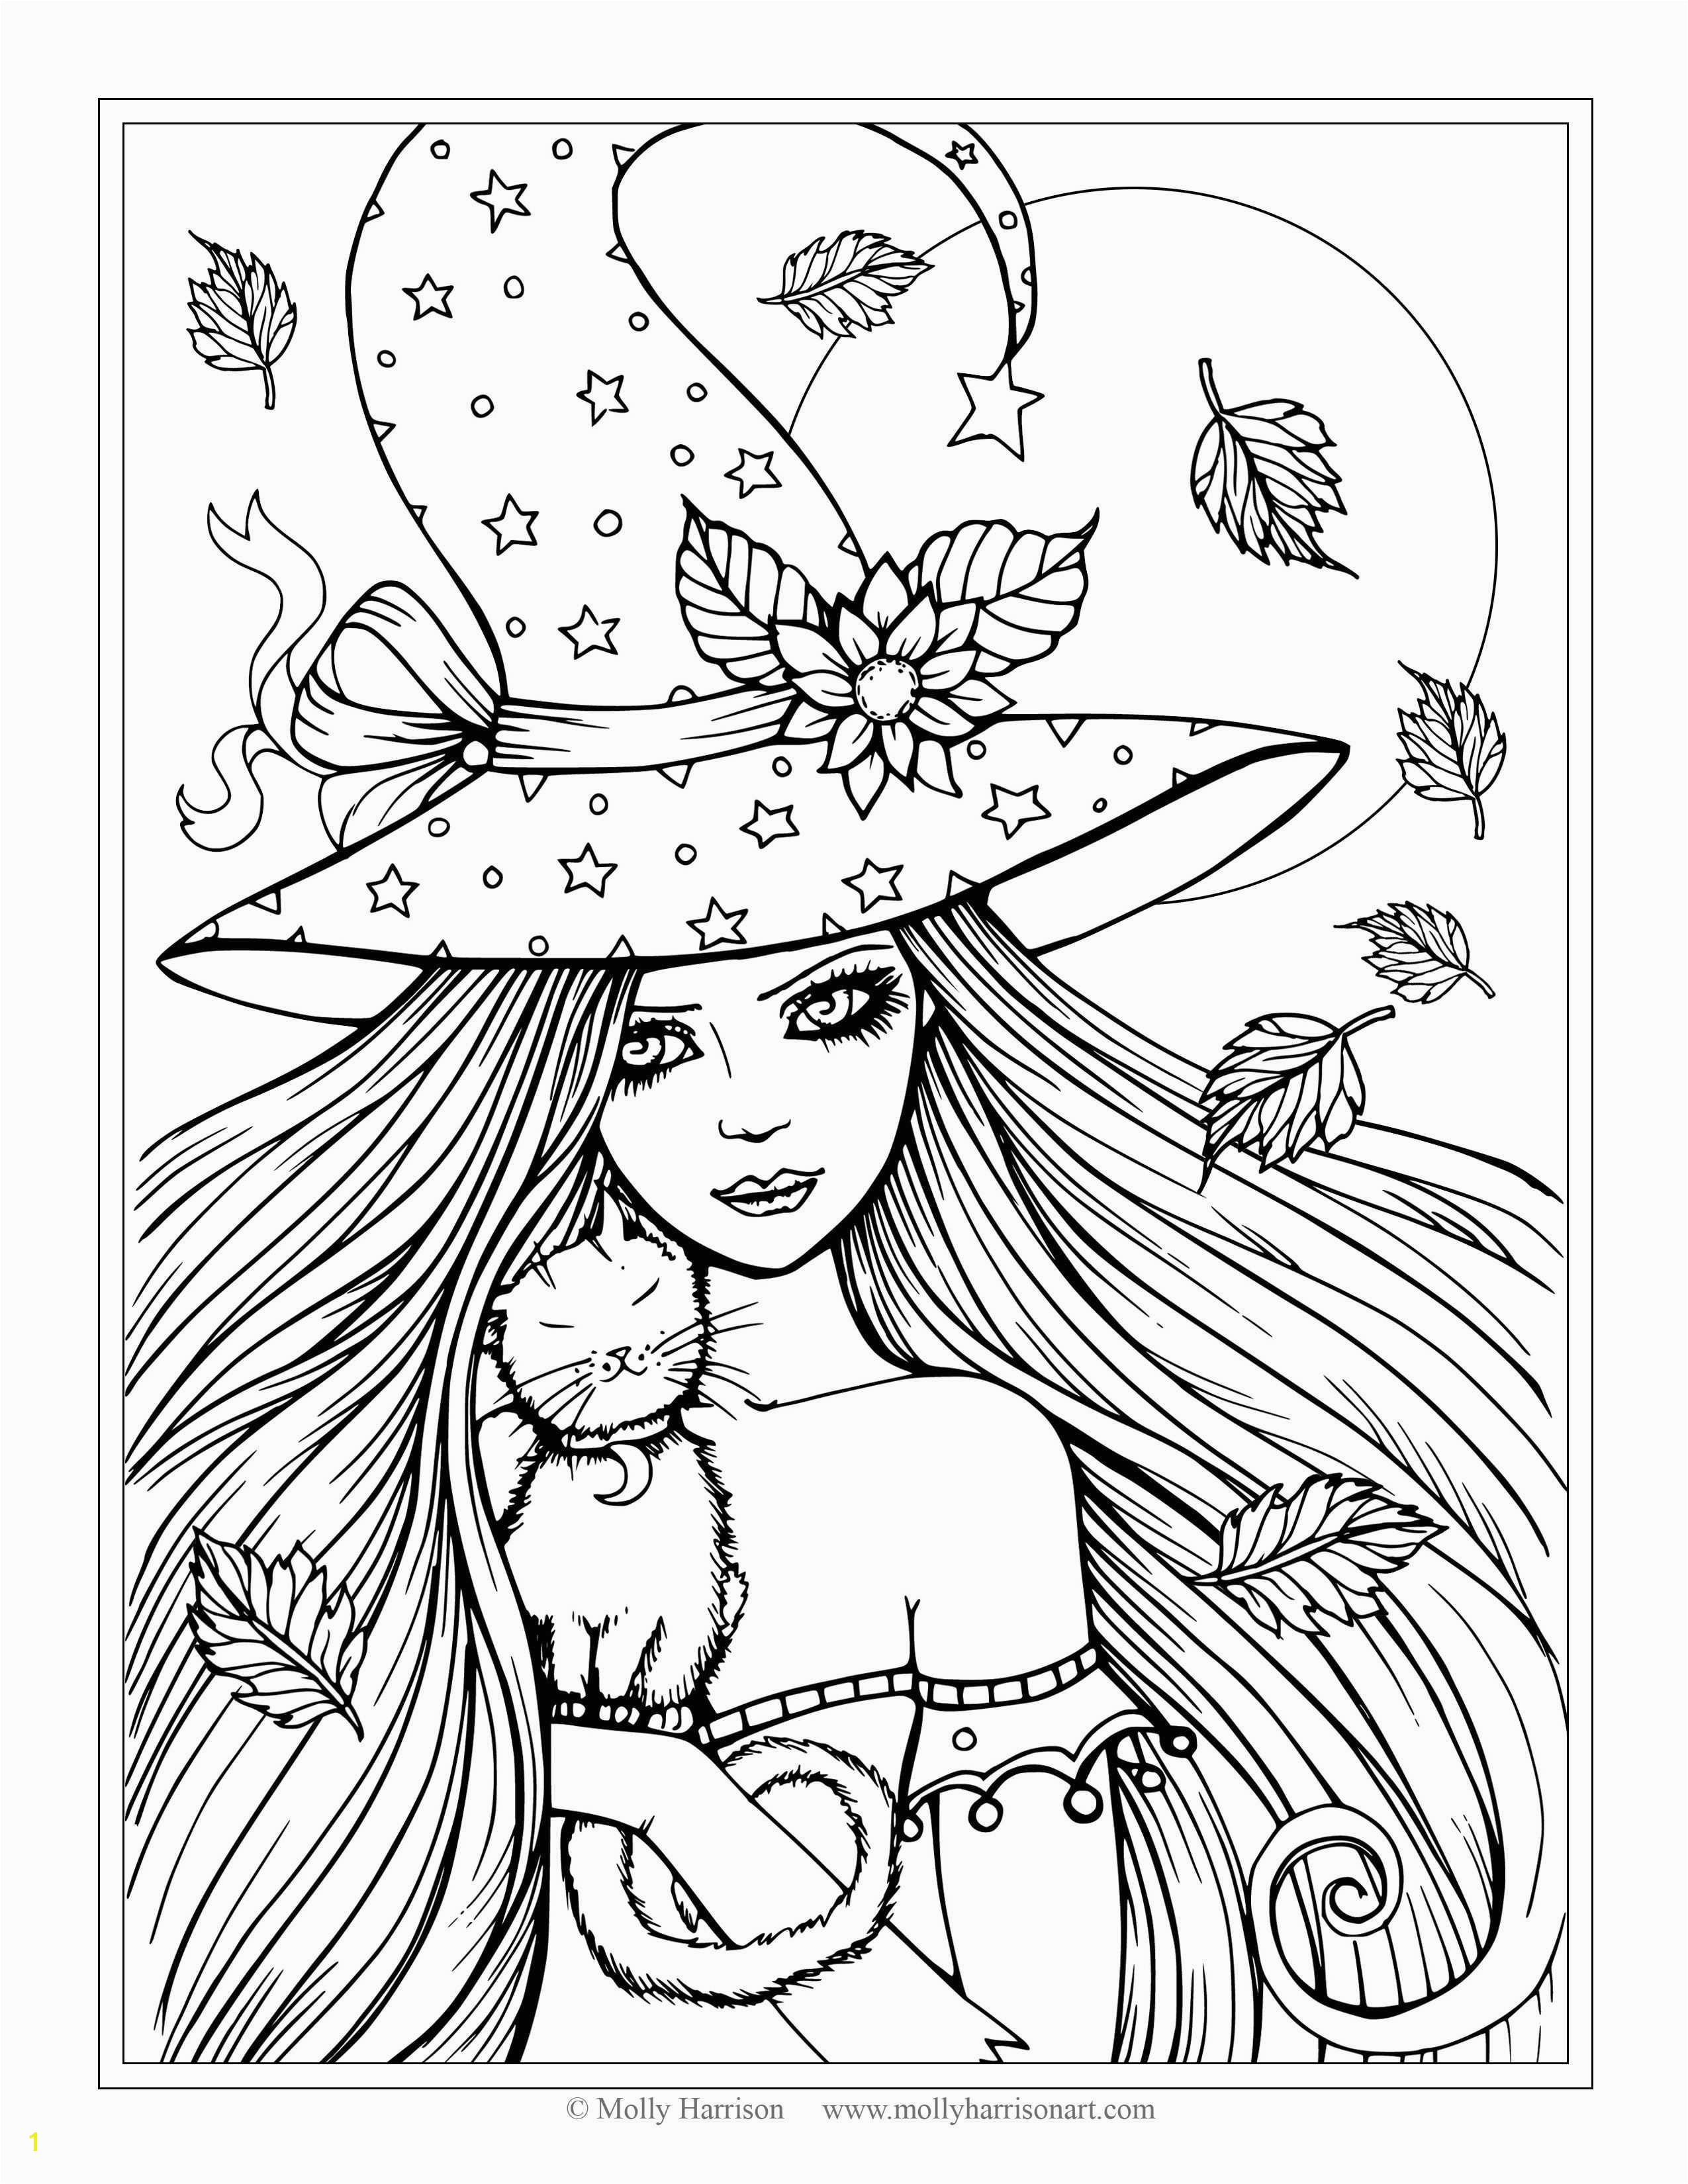 Cats Coloring Pages Cool Coloring Page Unique Witch Coloring Pages New Crayola Pages 0d